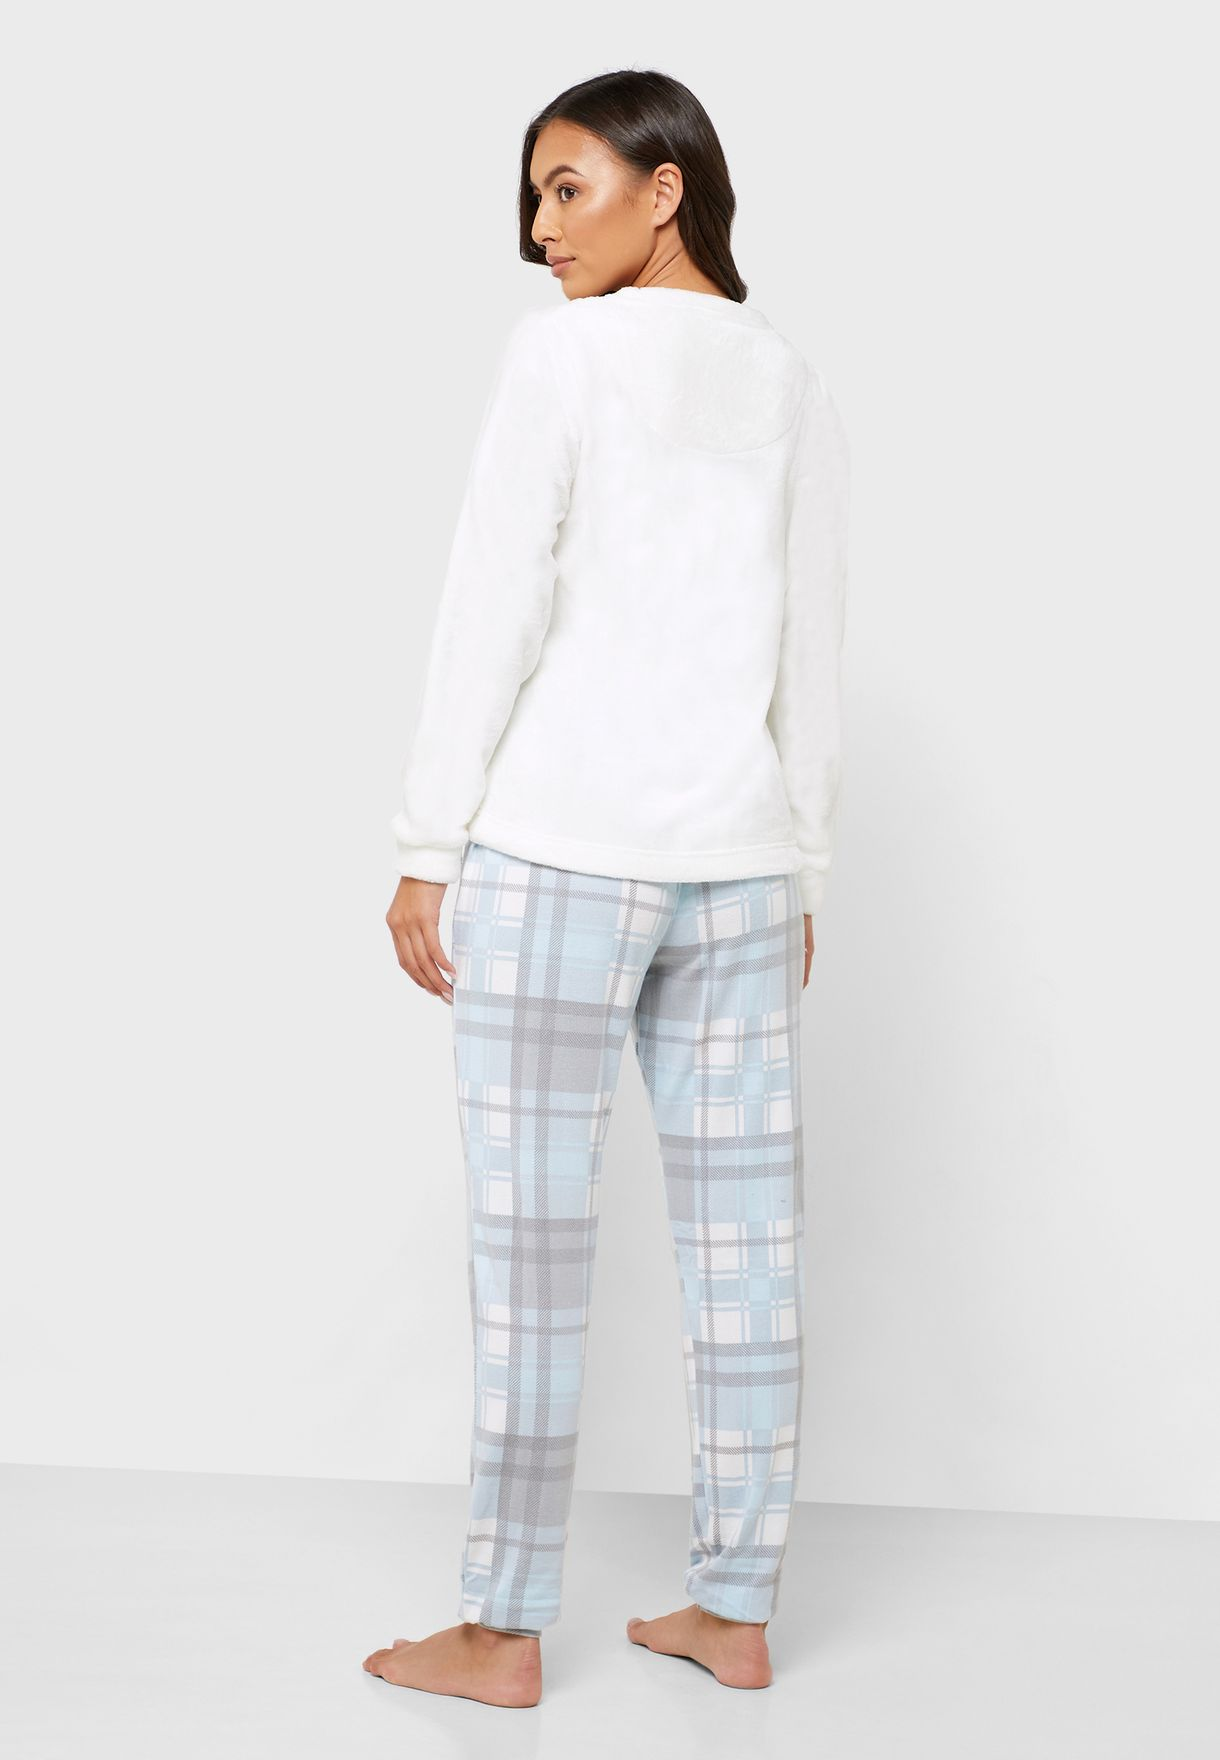 Slogan T-Shirt & Checked Pyjama Set